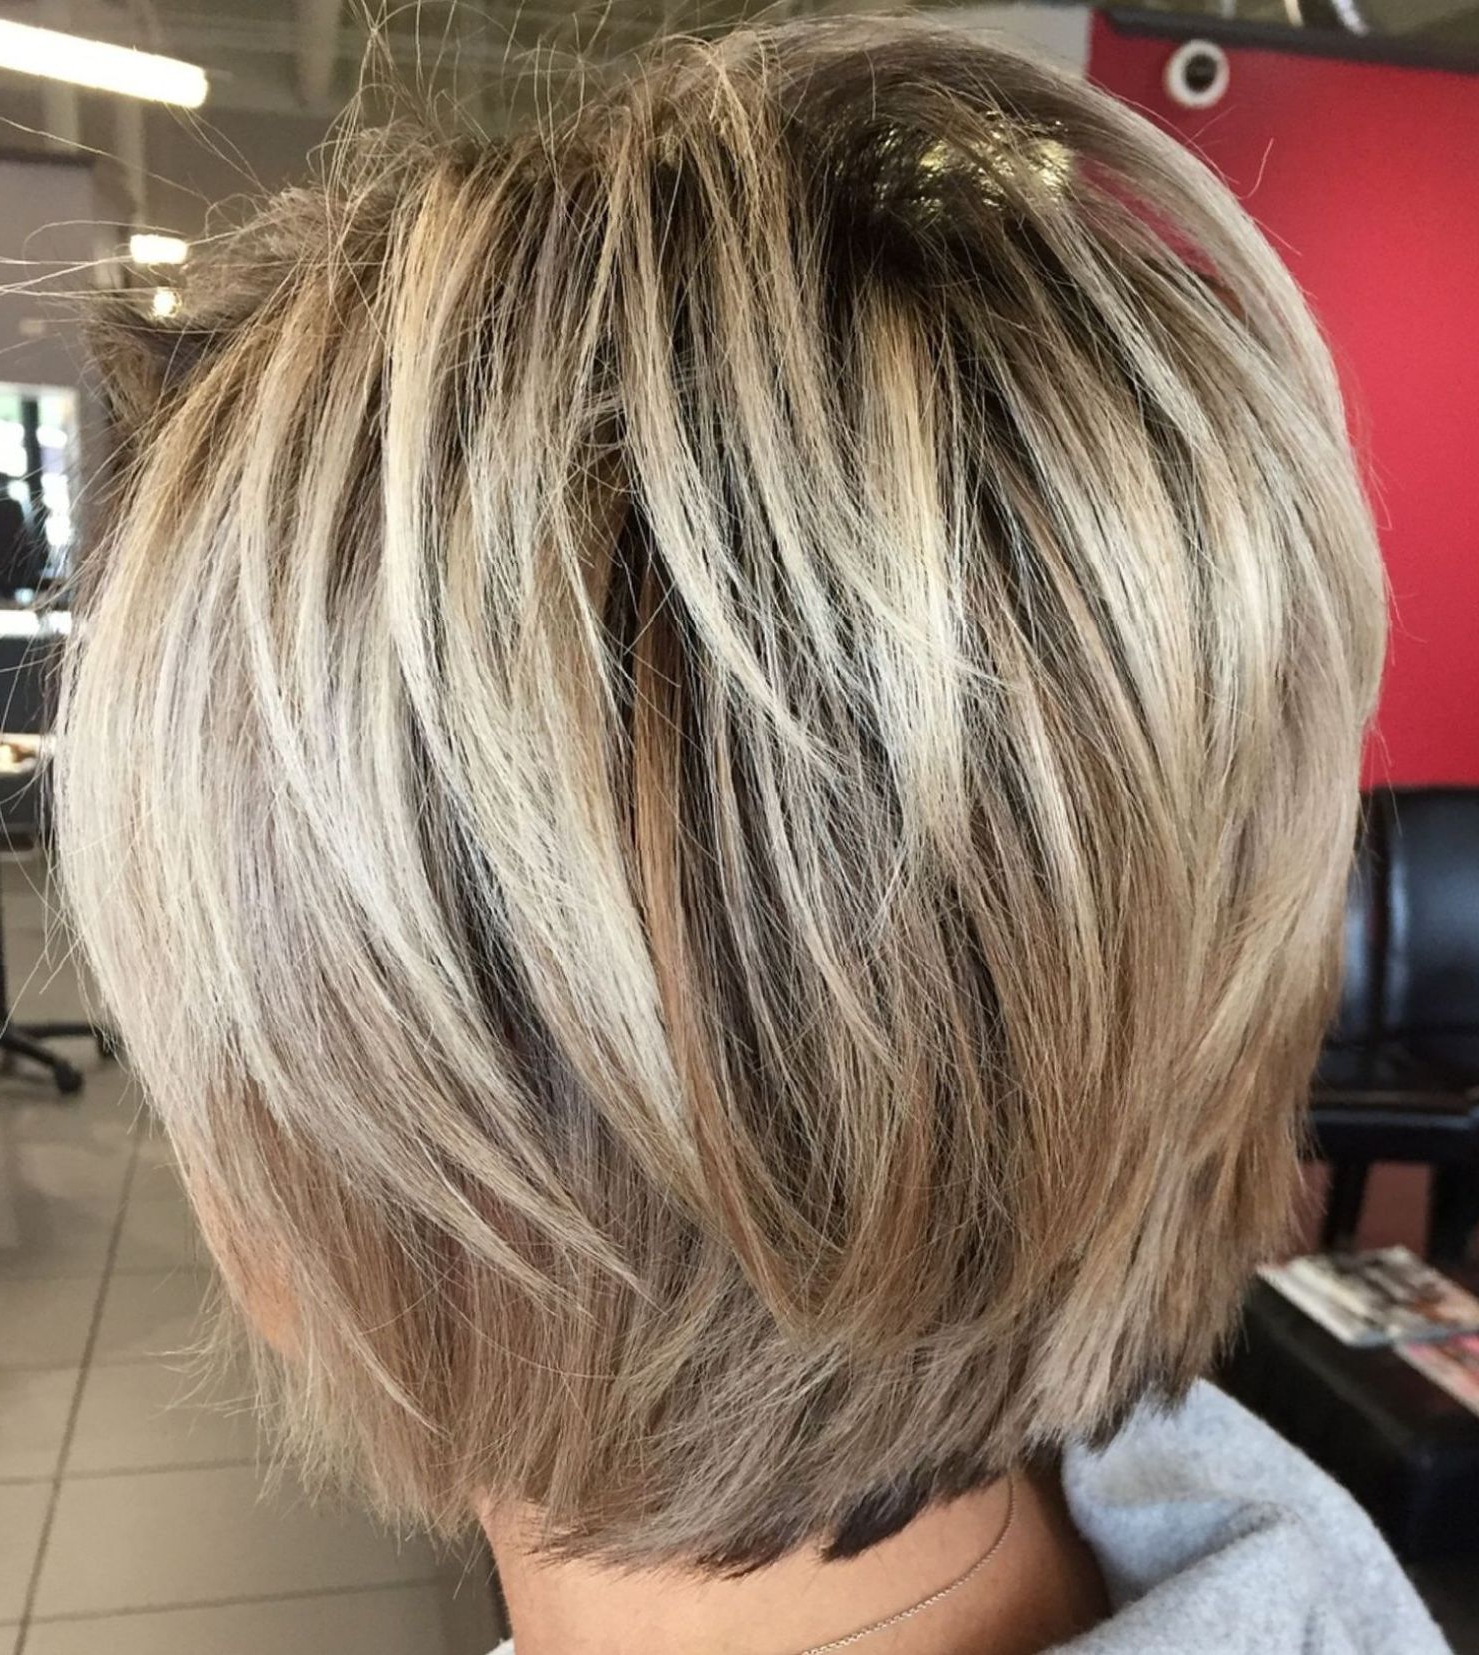 60 Short Shag Hairstyles That You Simply Can't Miss In 2019 In Blonde Bob Hairstyles With Shaggy Crown Layers (View 12 of 20)